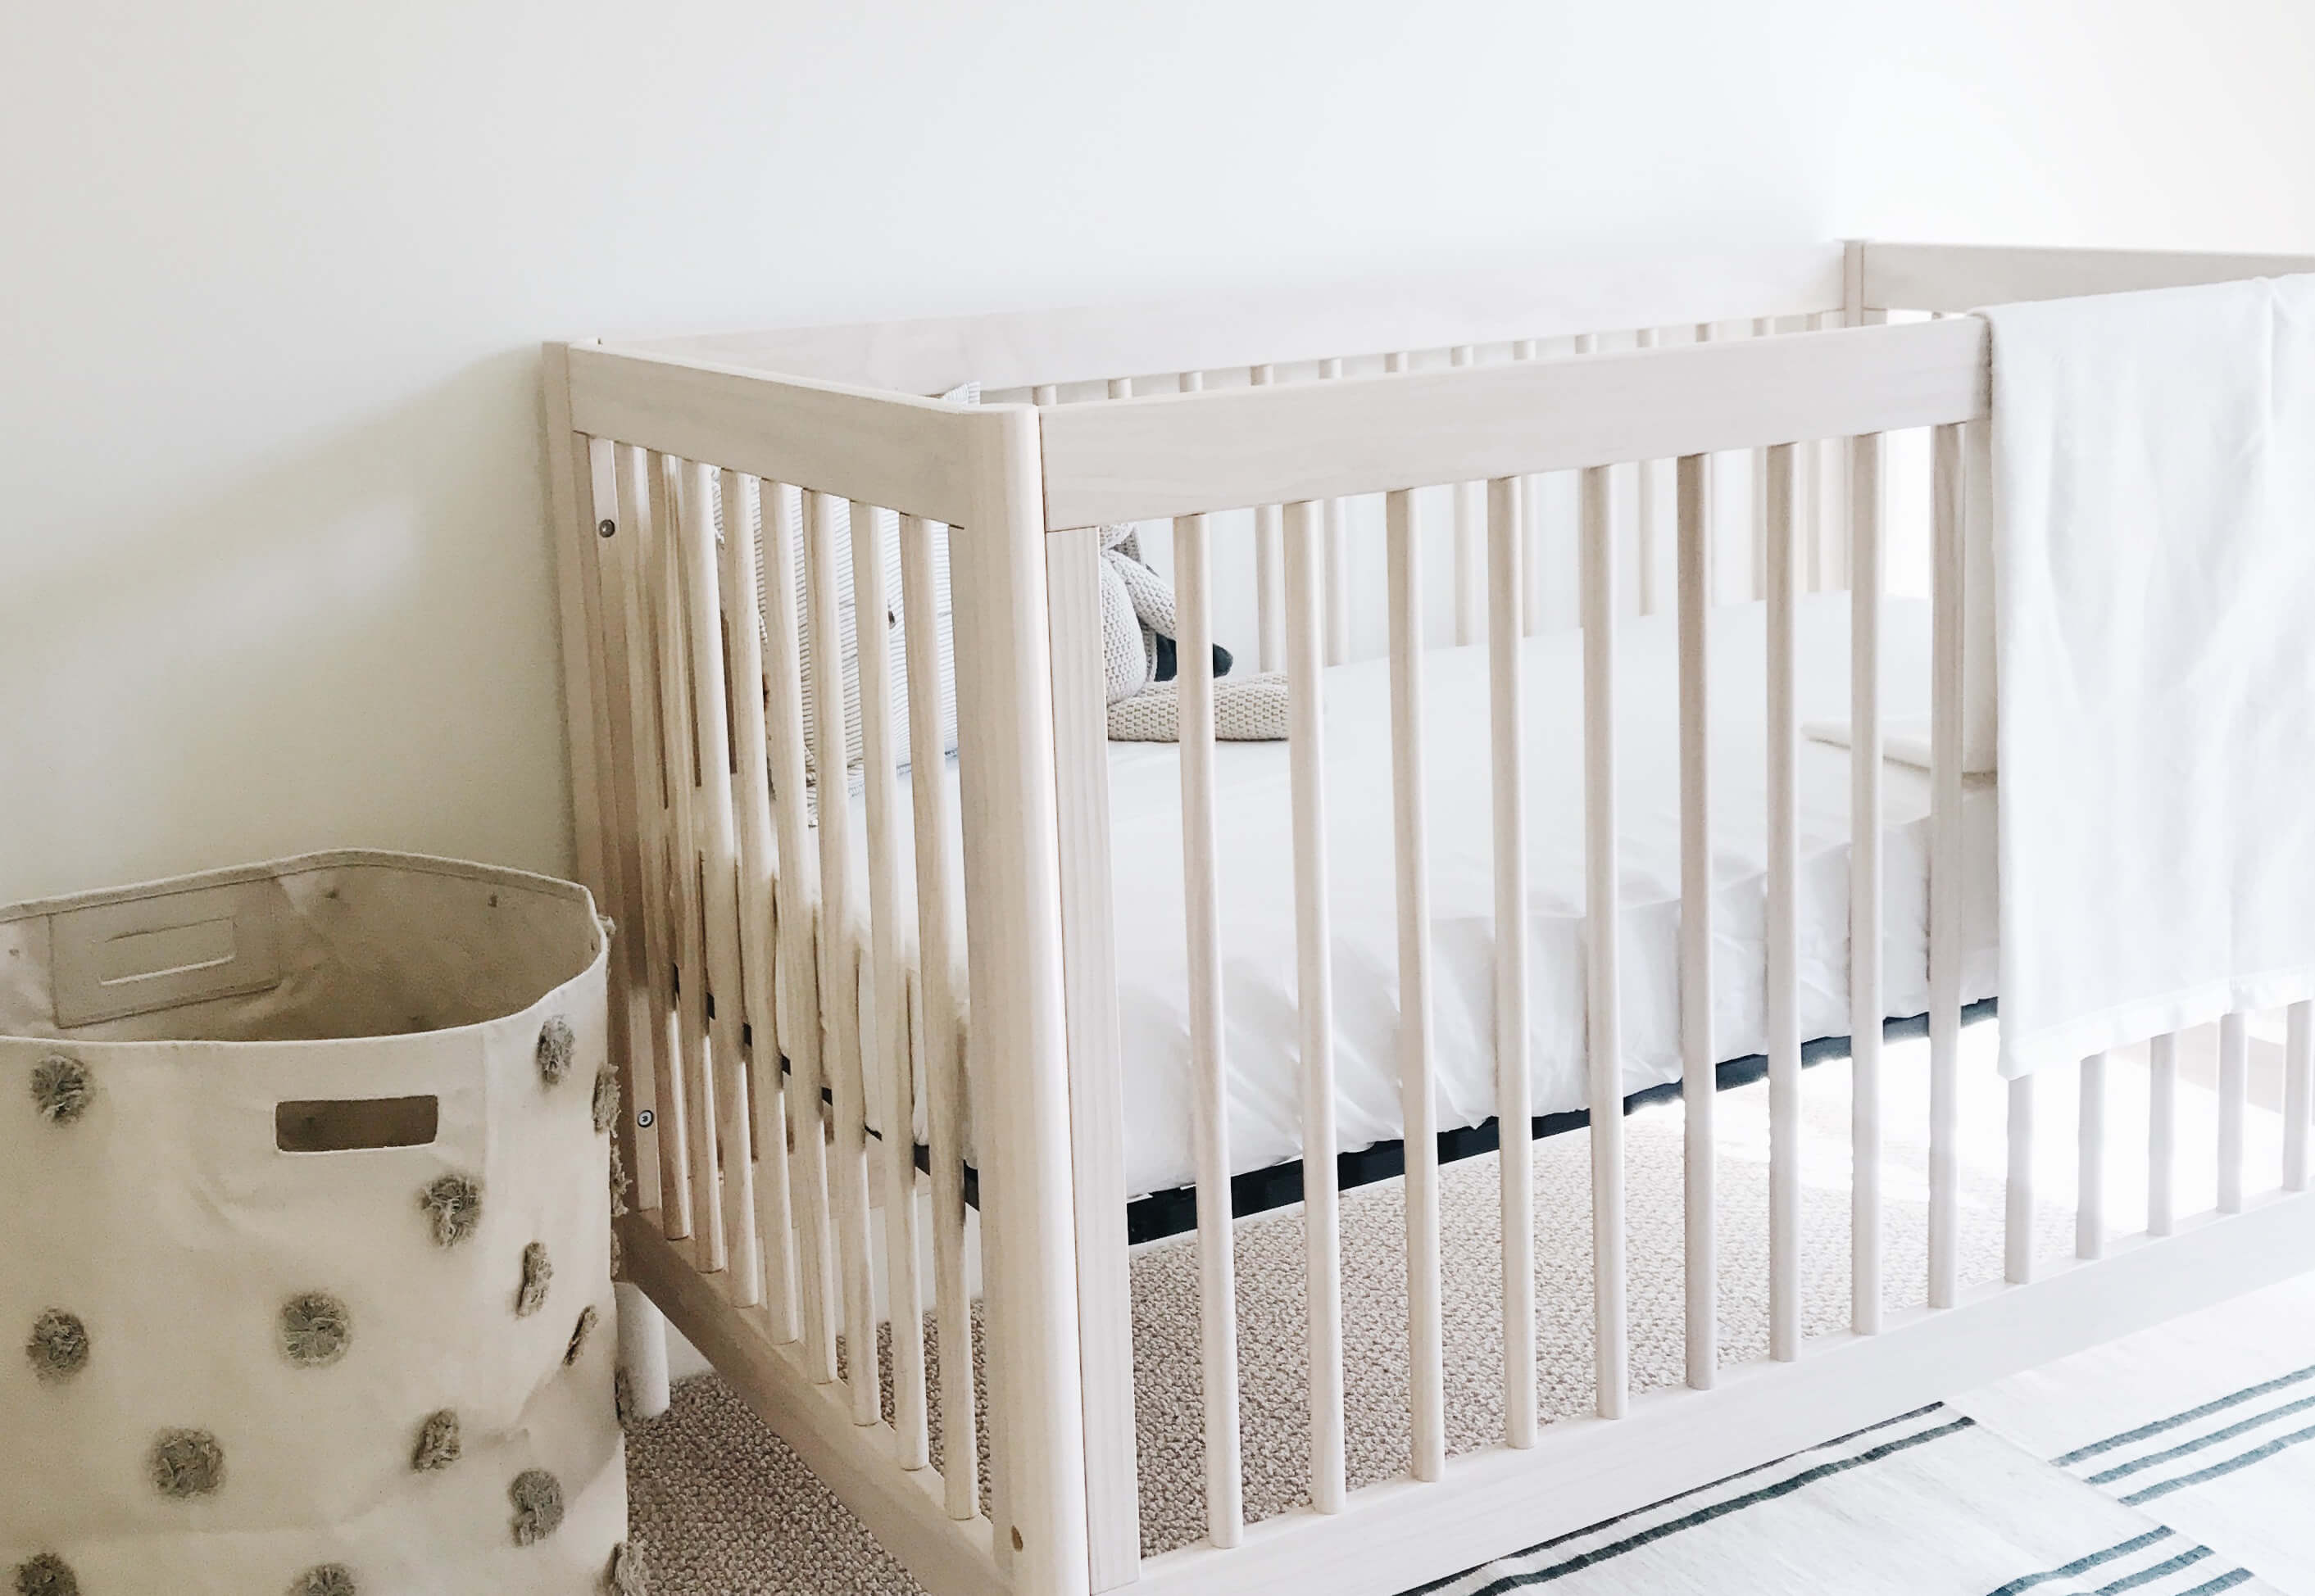 wooden crib bed made with bamboo crib sheets